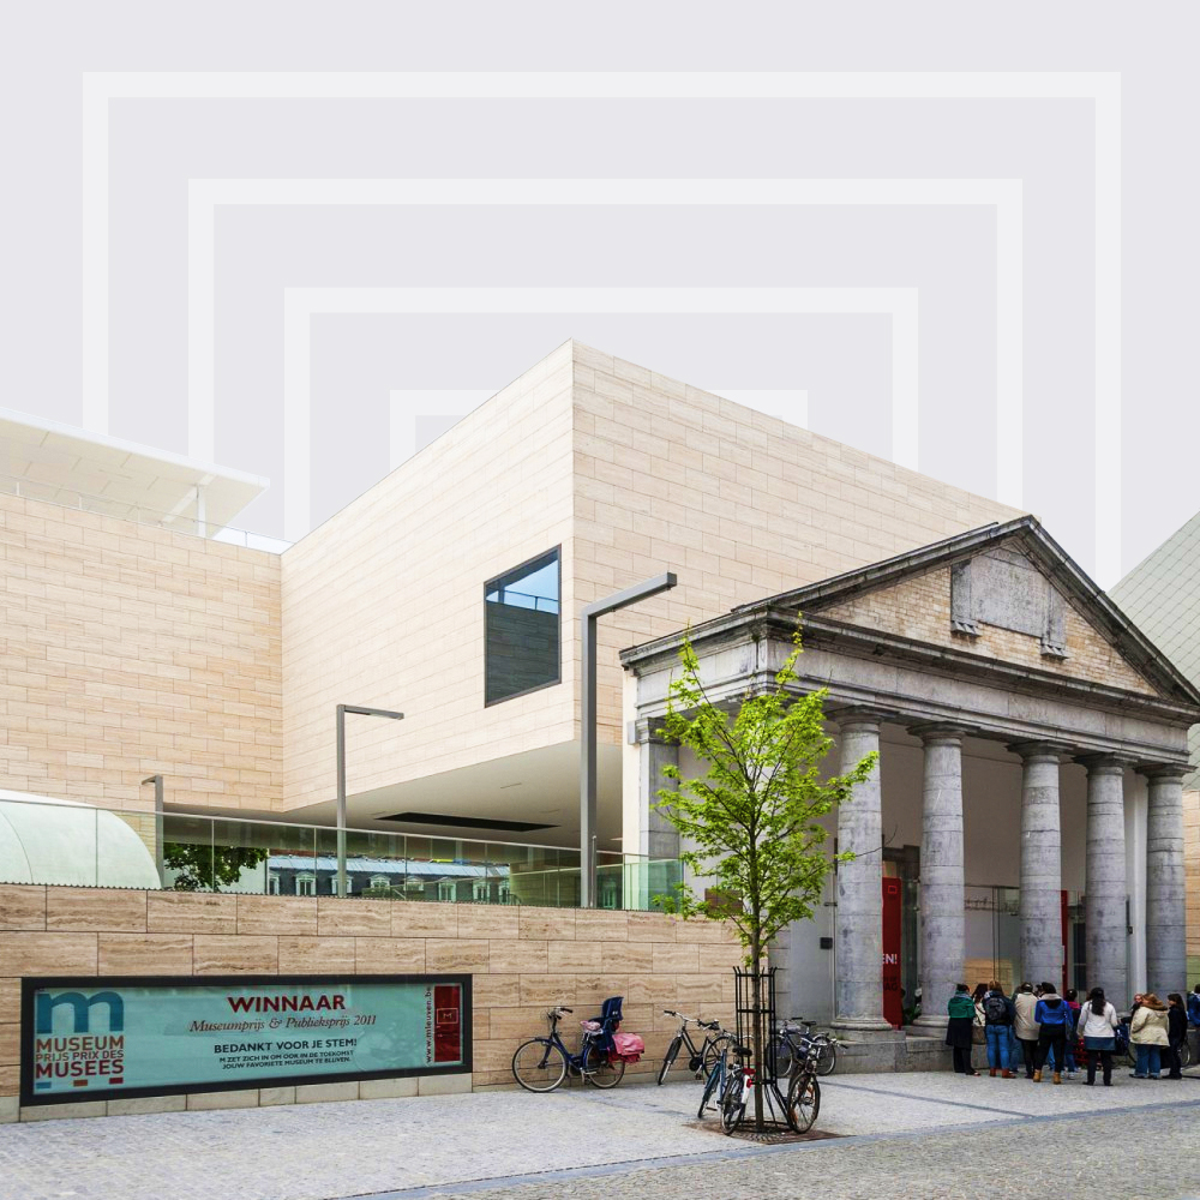 How a museum went from spending half a day to just 1 hour on outreach